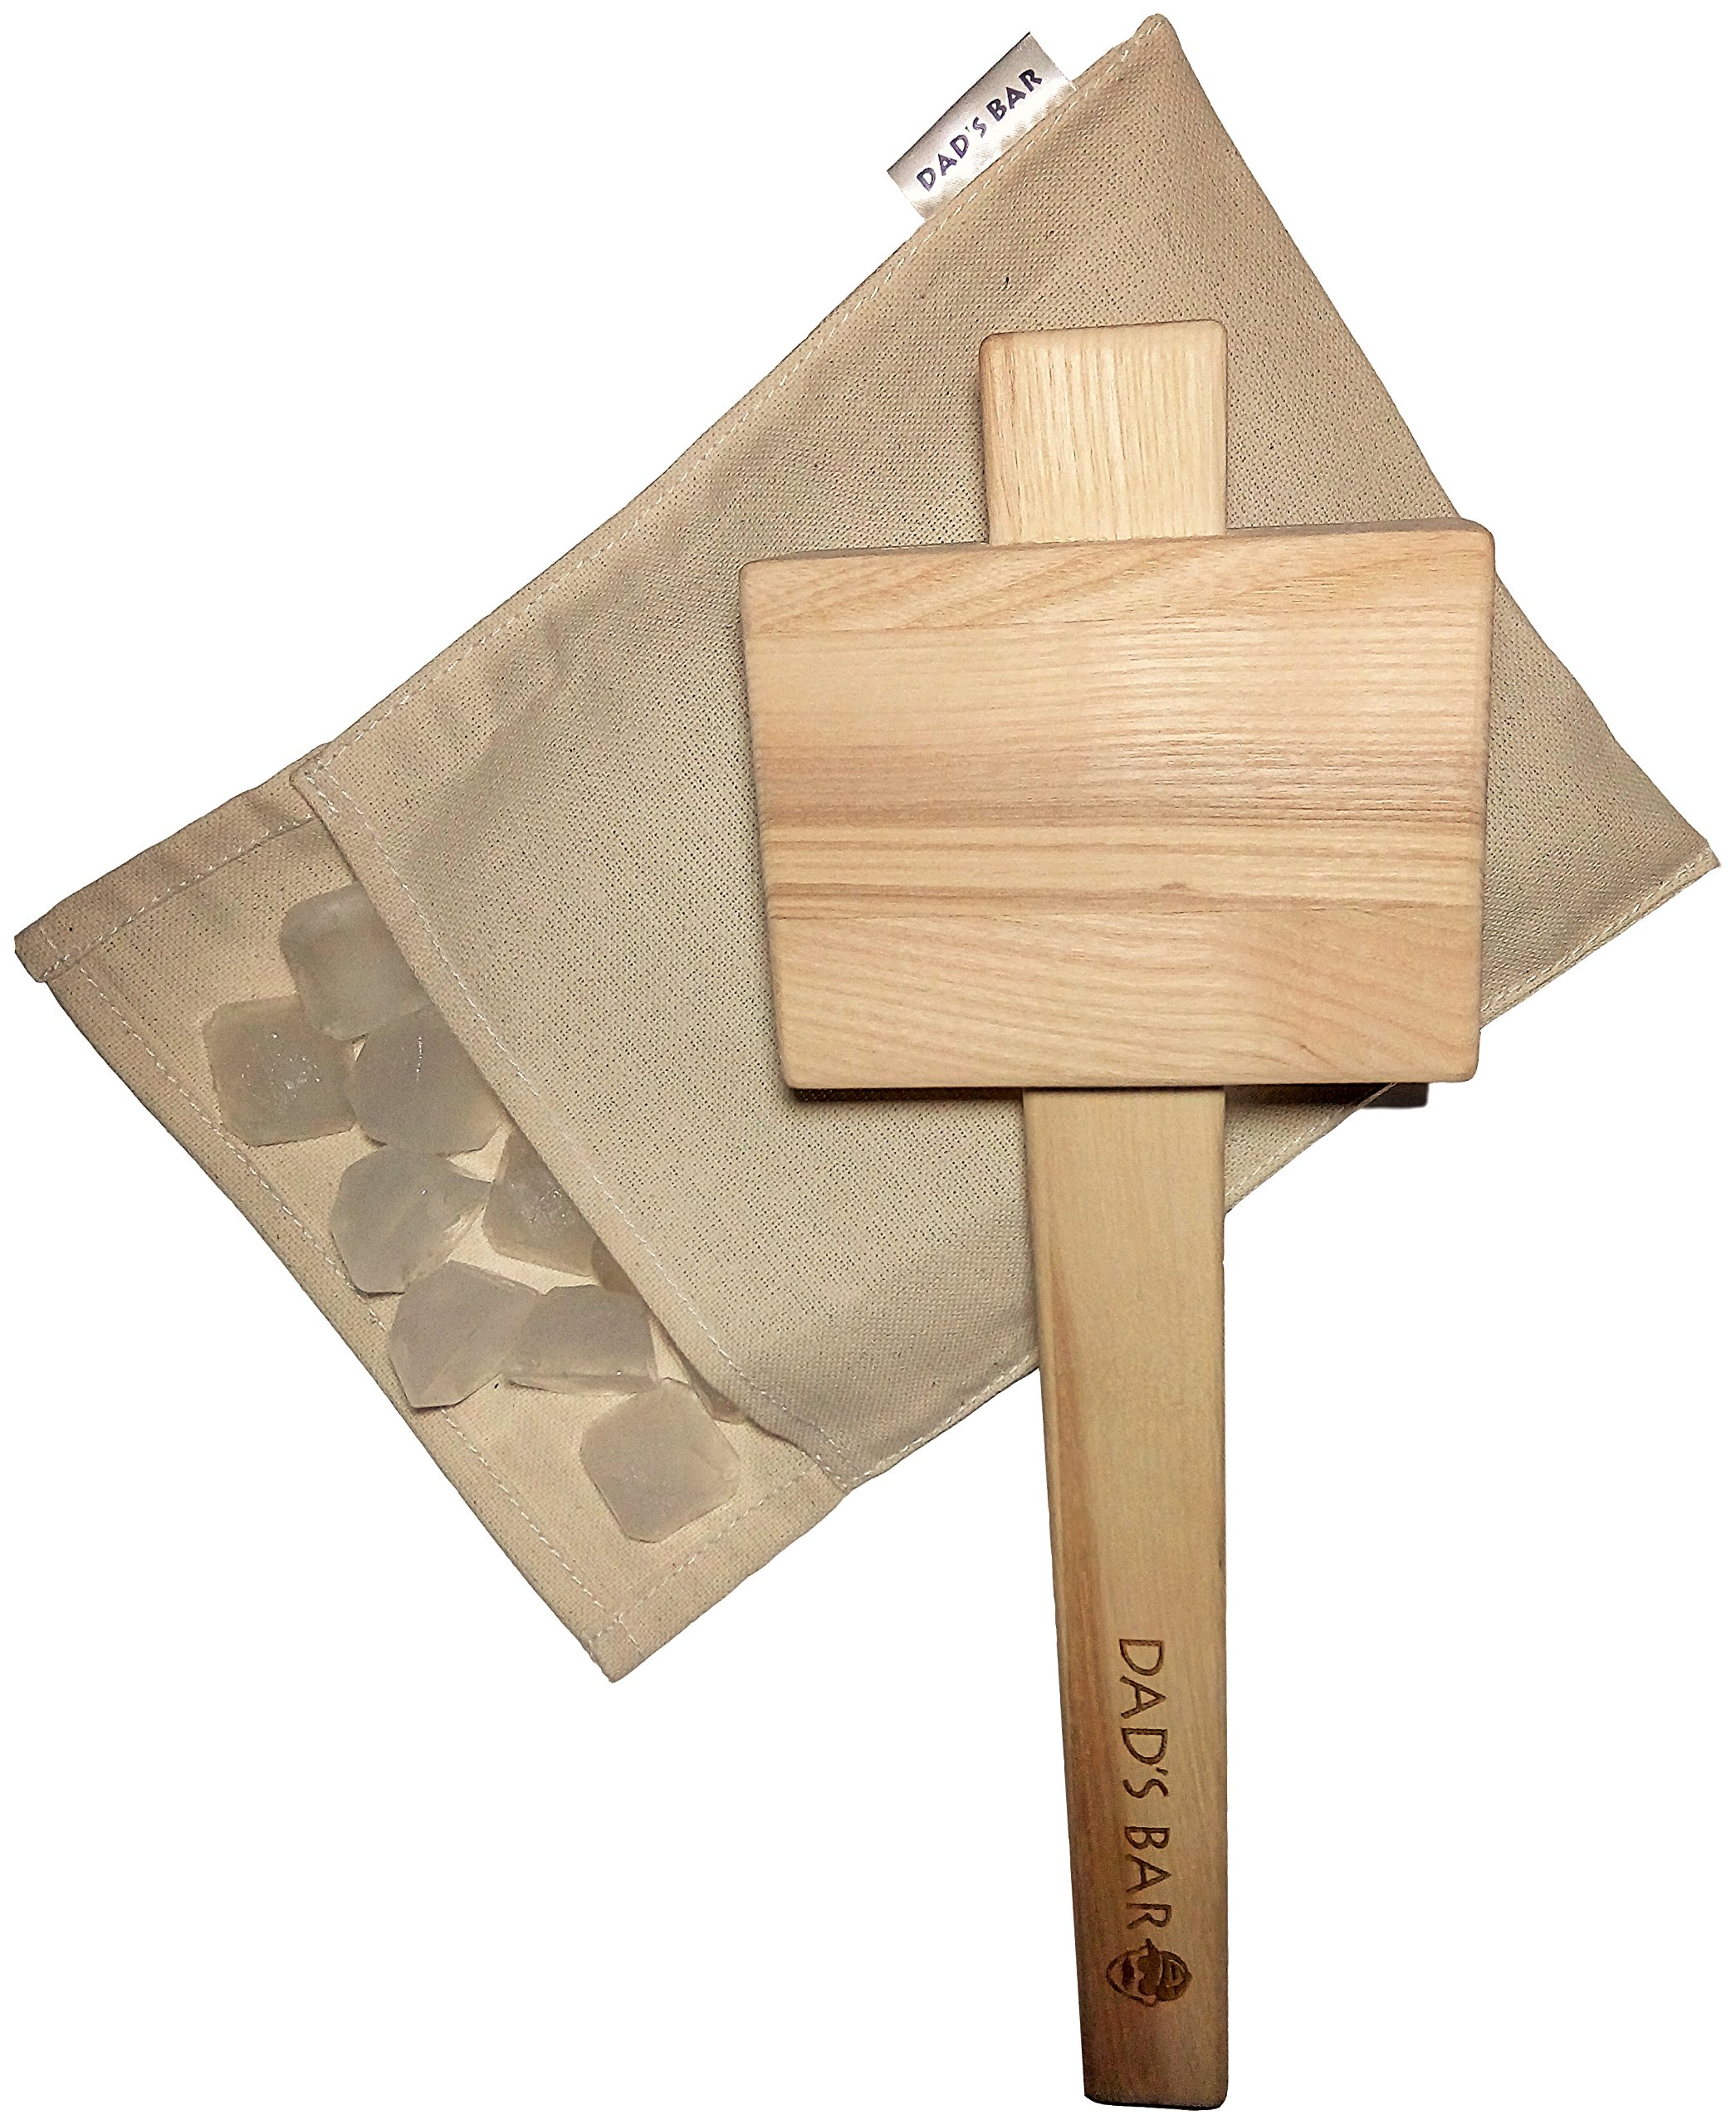 Lewis Ice Bag and Mallet effective and stylish manual Ice Crusher by Dad's Bar Large Mallet 14 Inches by Dad's Bar (Image #1)